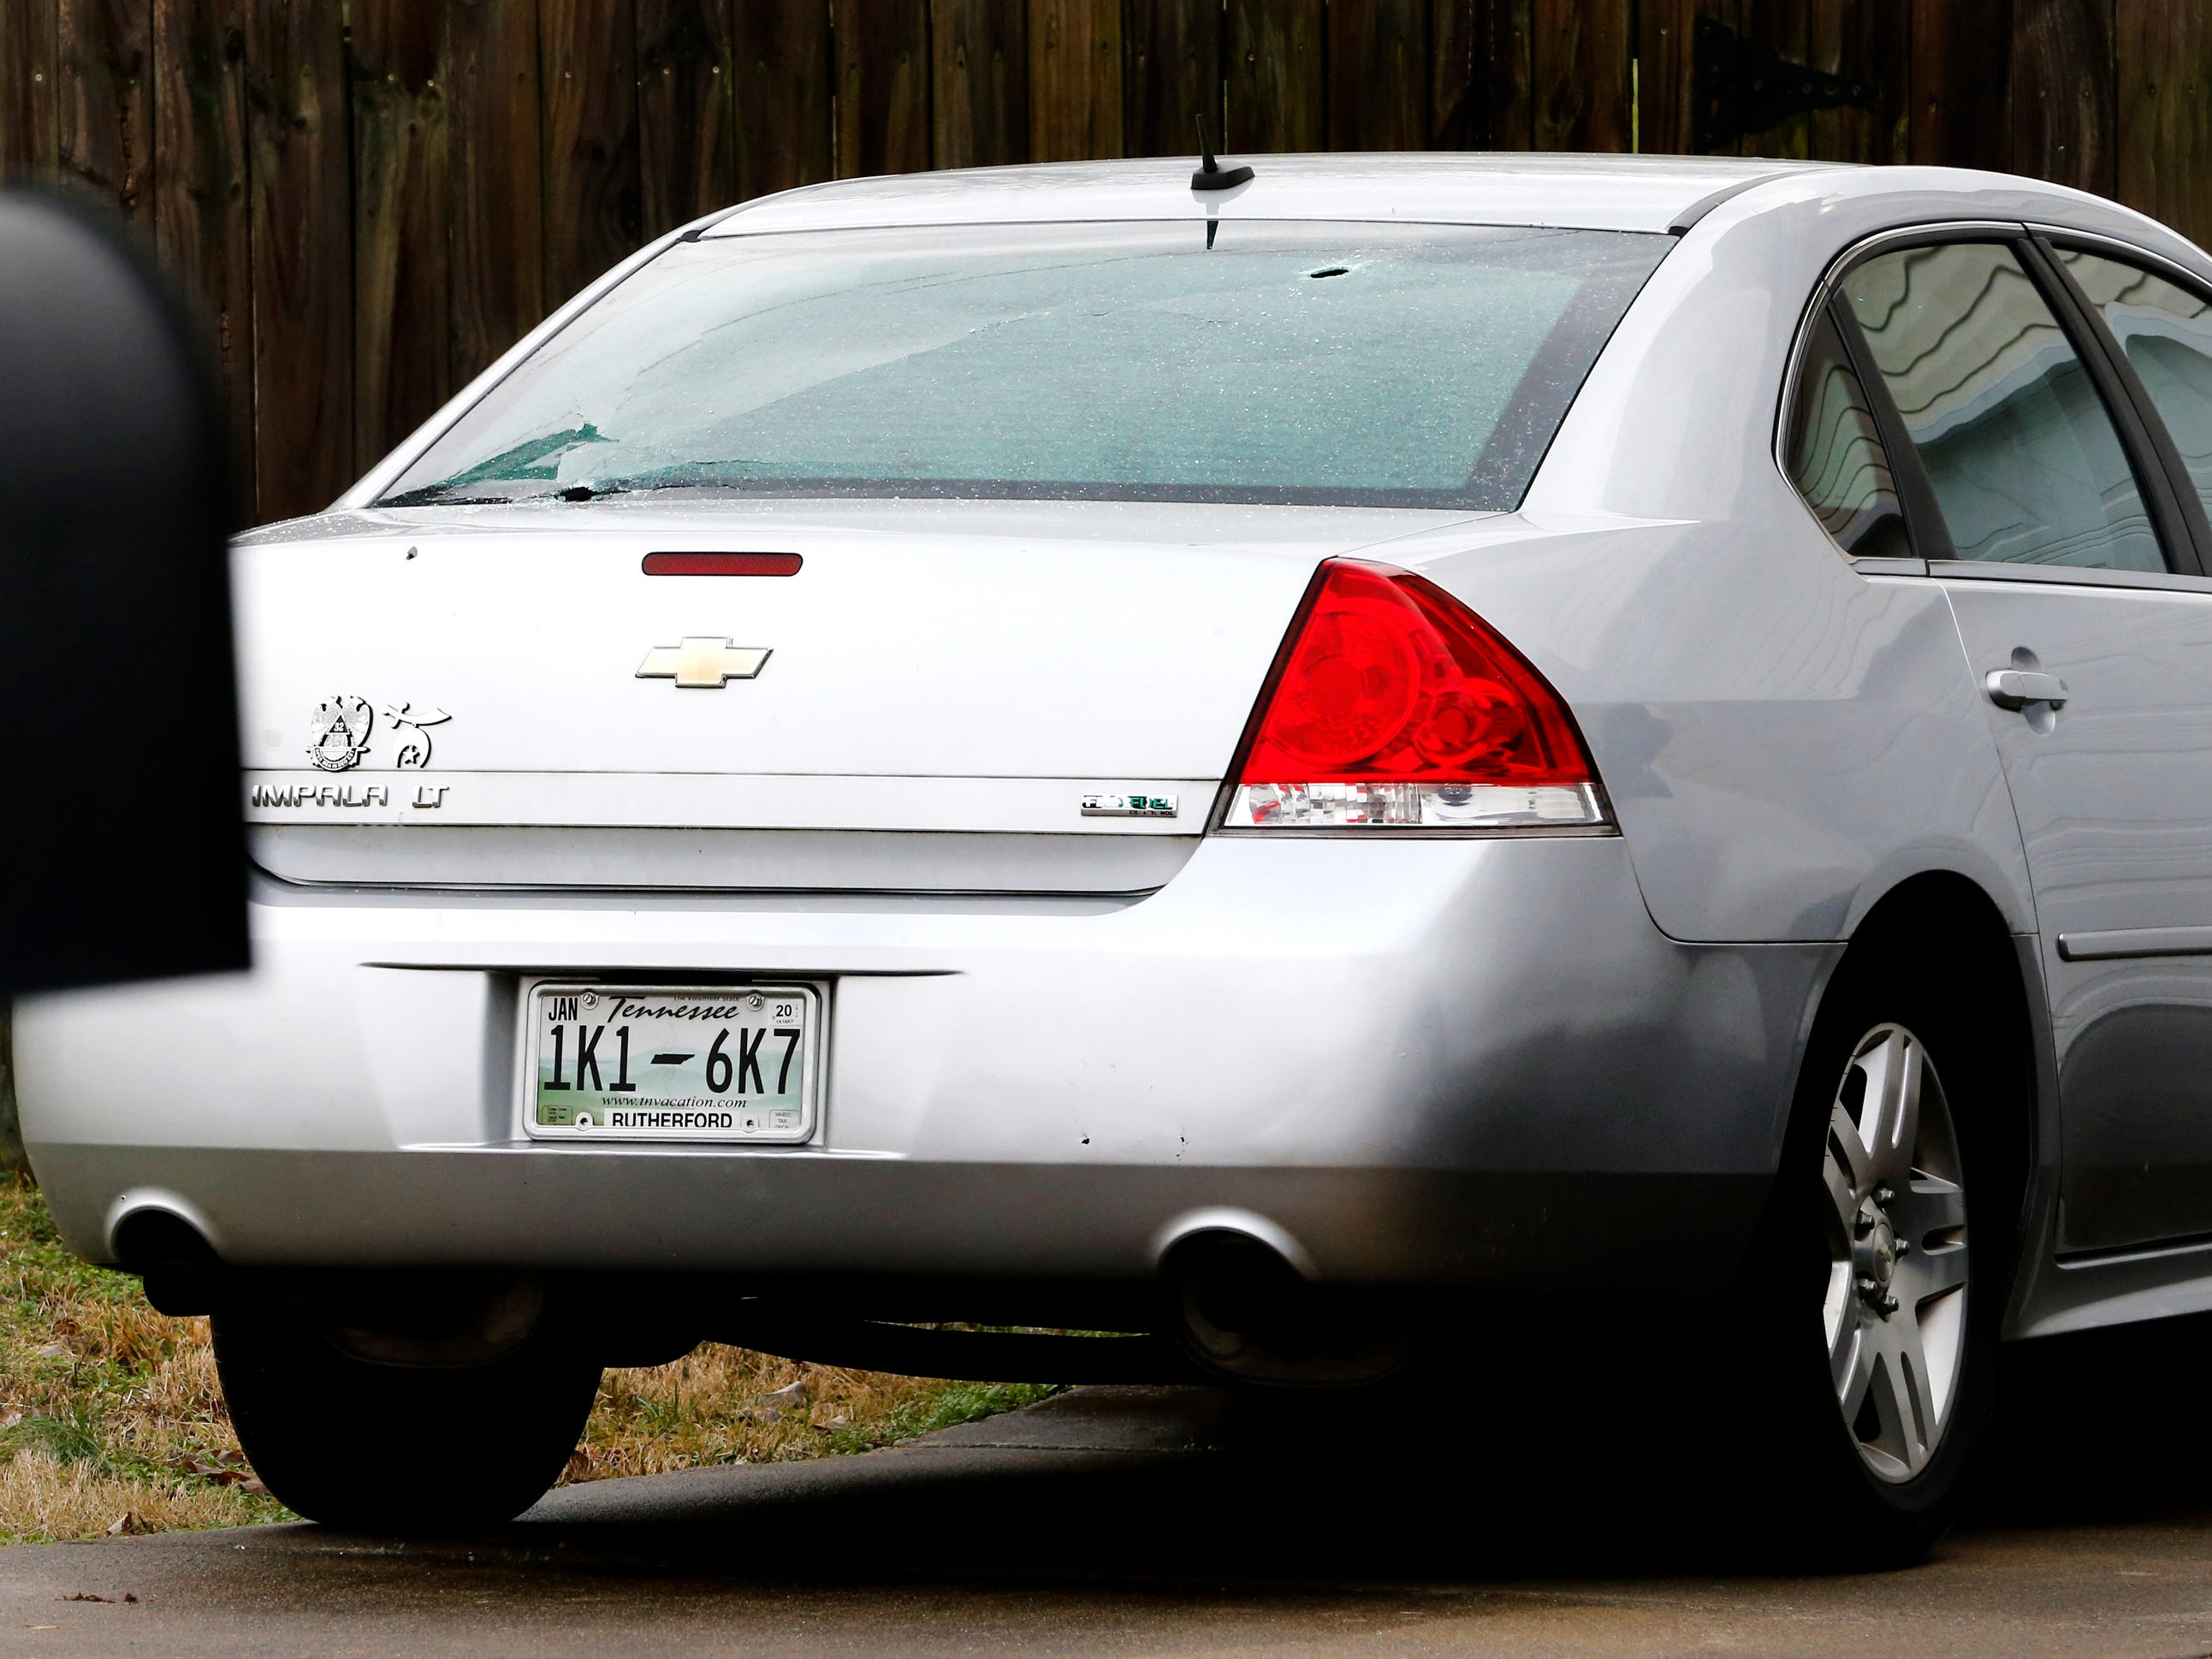 Bullet holes are seen in the back window of an Impala at a home on the 200 block of Breeze Drive, where an officer-involved deadly shooting took place on Thursday, Feb. 7, 2019.